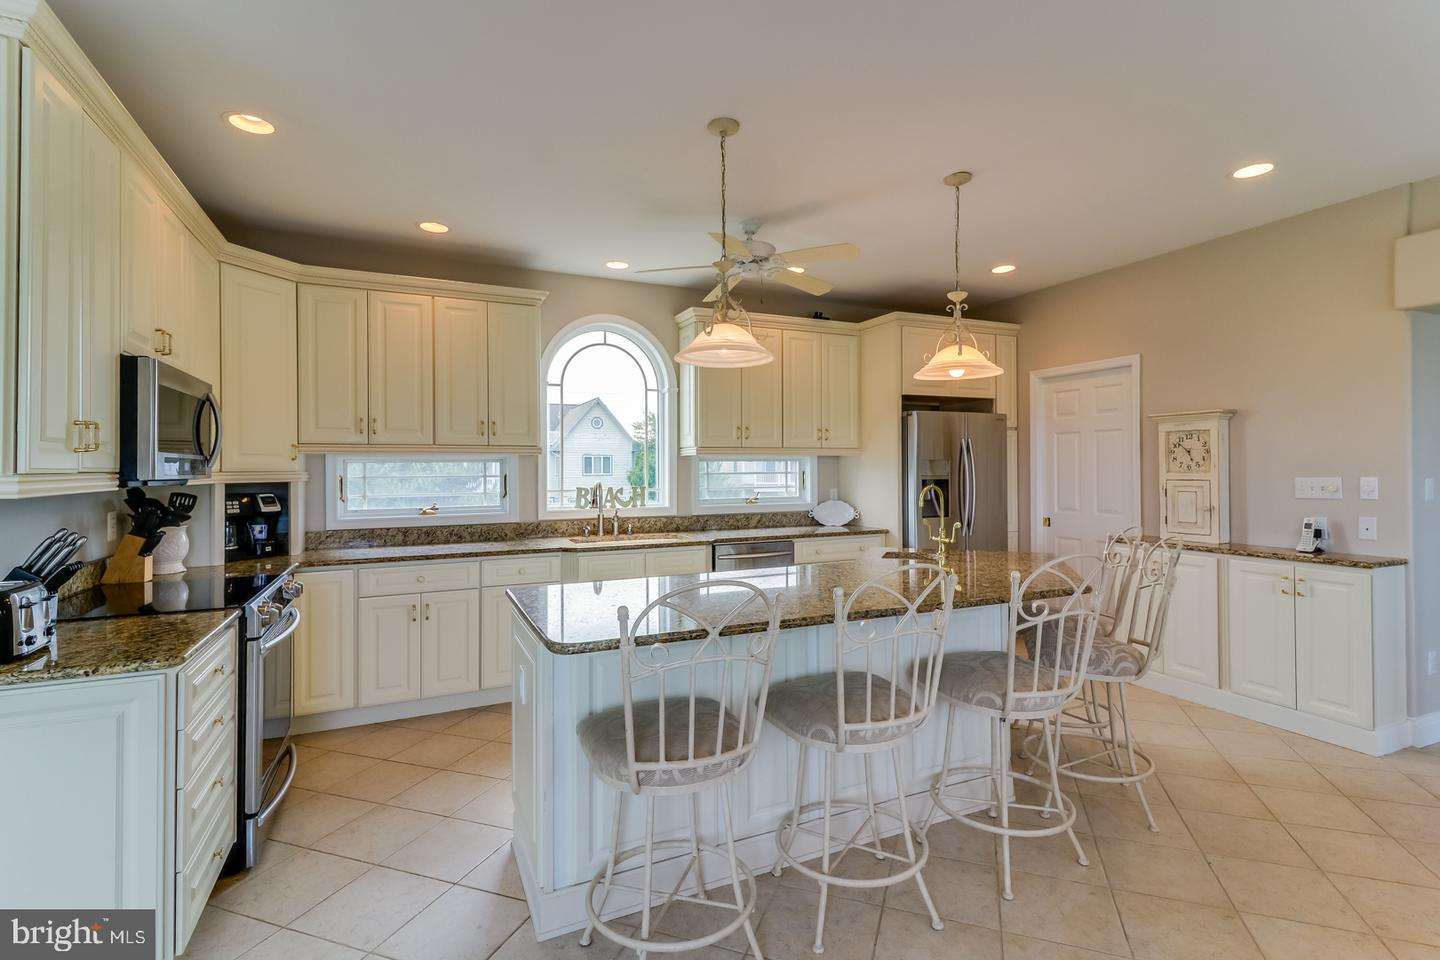 DESU144366-301896700755-2019-08-01-12-58-35 305 Le Pointe Dr | North Bethany, De Real Estate For Sale | MLS# Desu144366  - Suzanne Macnab